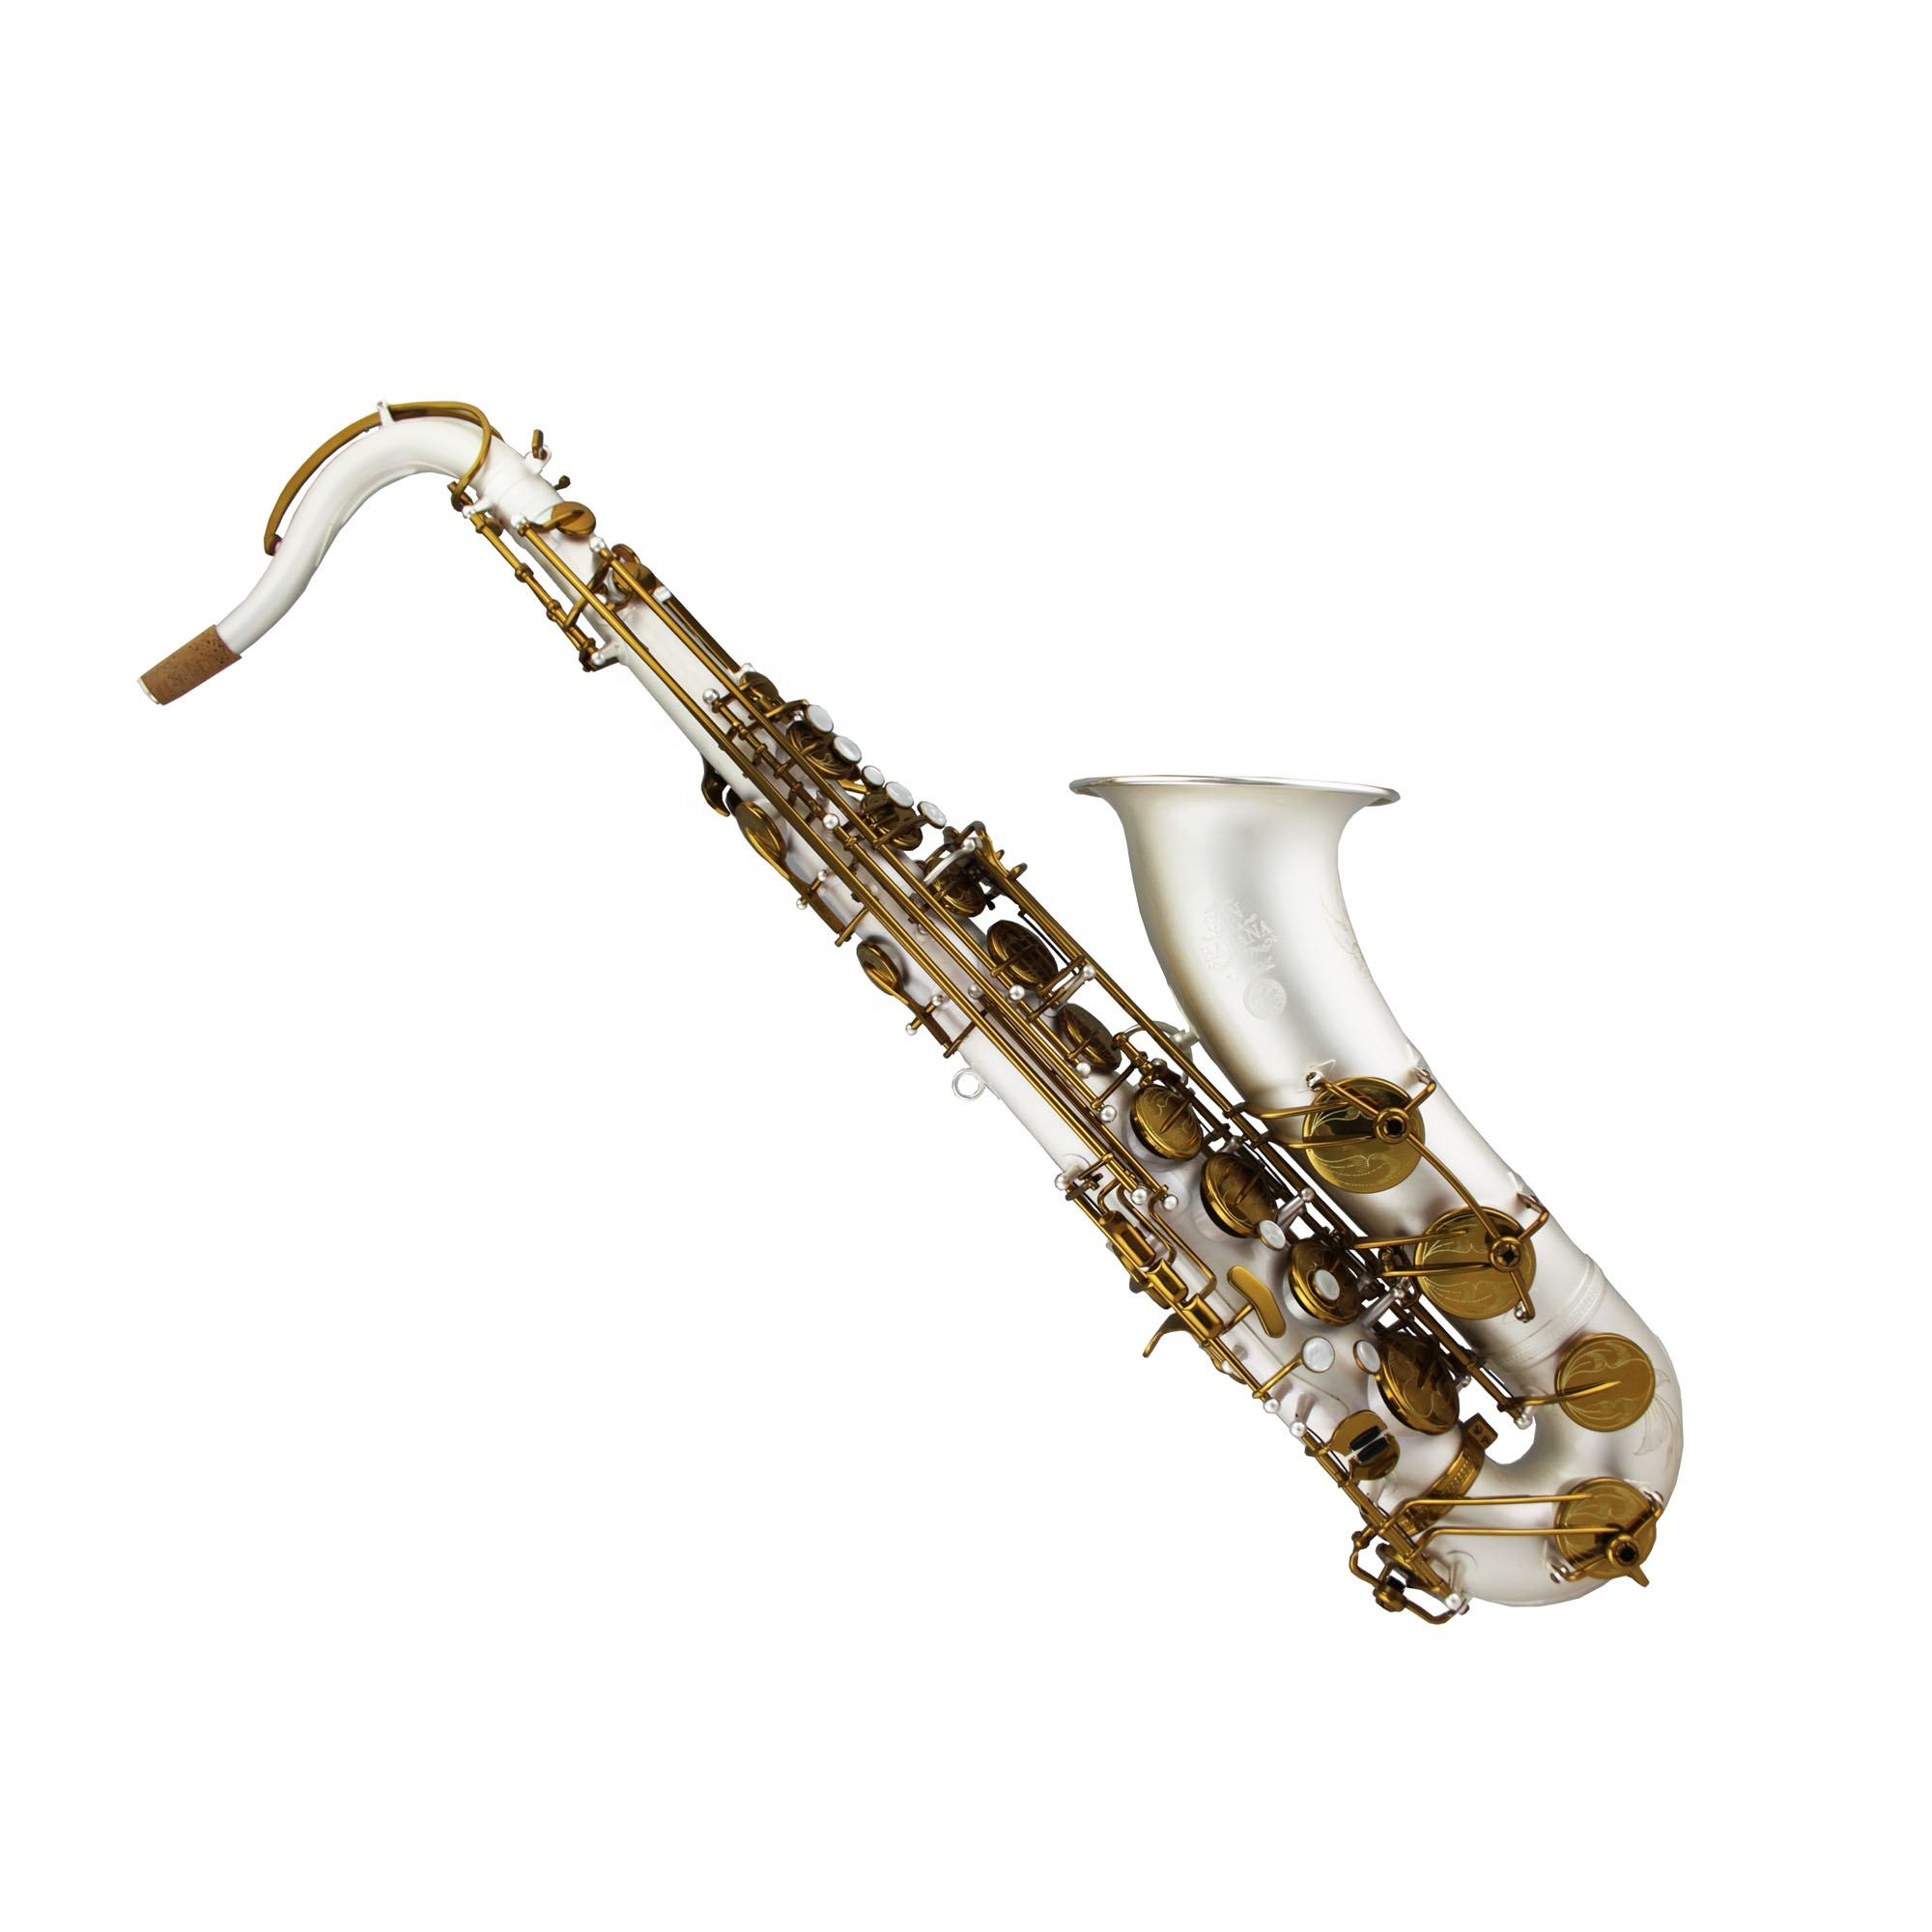 Tide Music pro use tenor saxophone satin silver plated MKVI type with contoured case